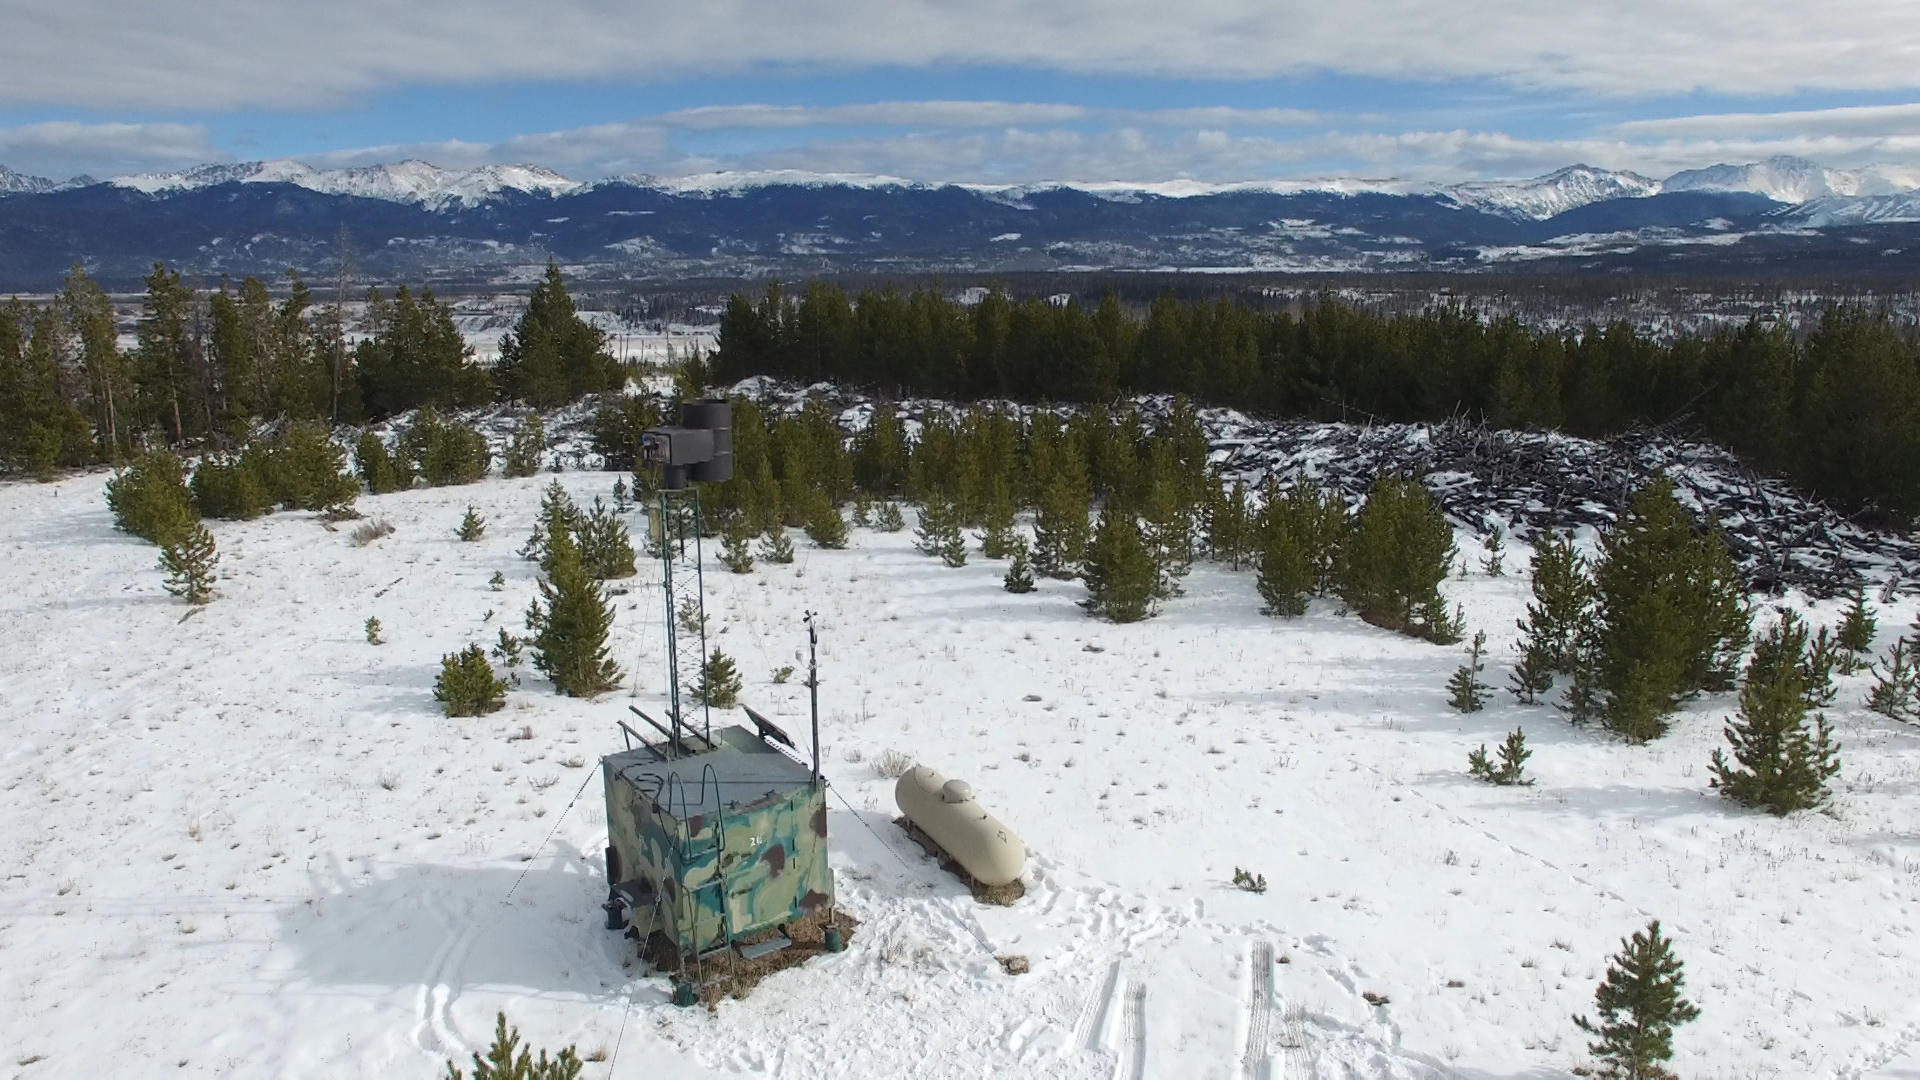 An remote-operated cloud seeding generator in Grand County, Colorado, is operated by Desert Research Institute and seeds clouds north of Winter Park Ski Resort.